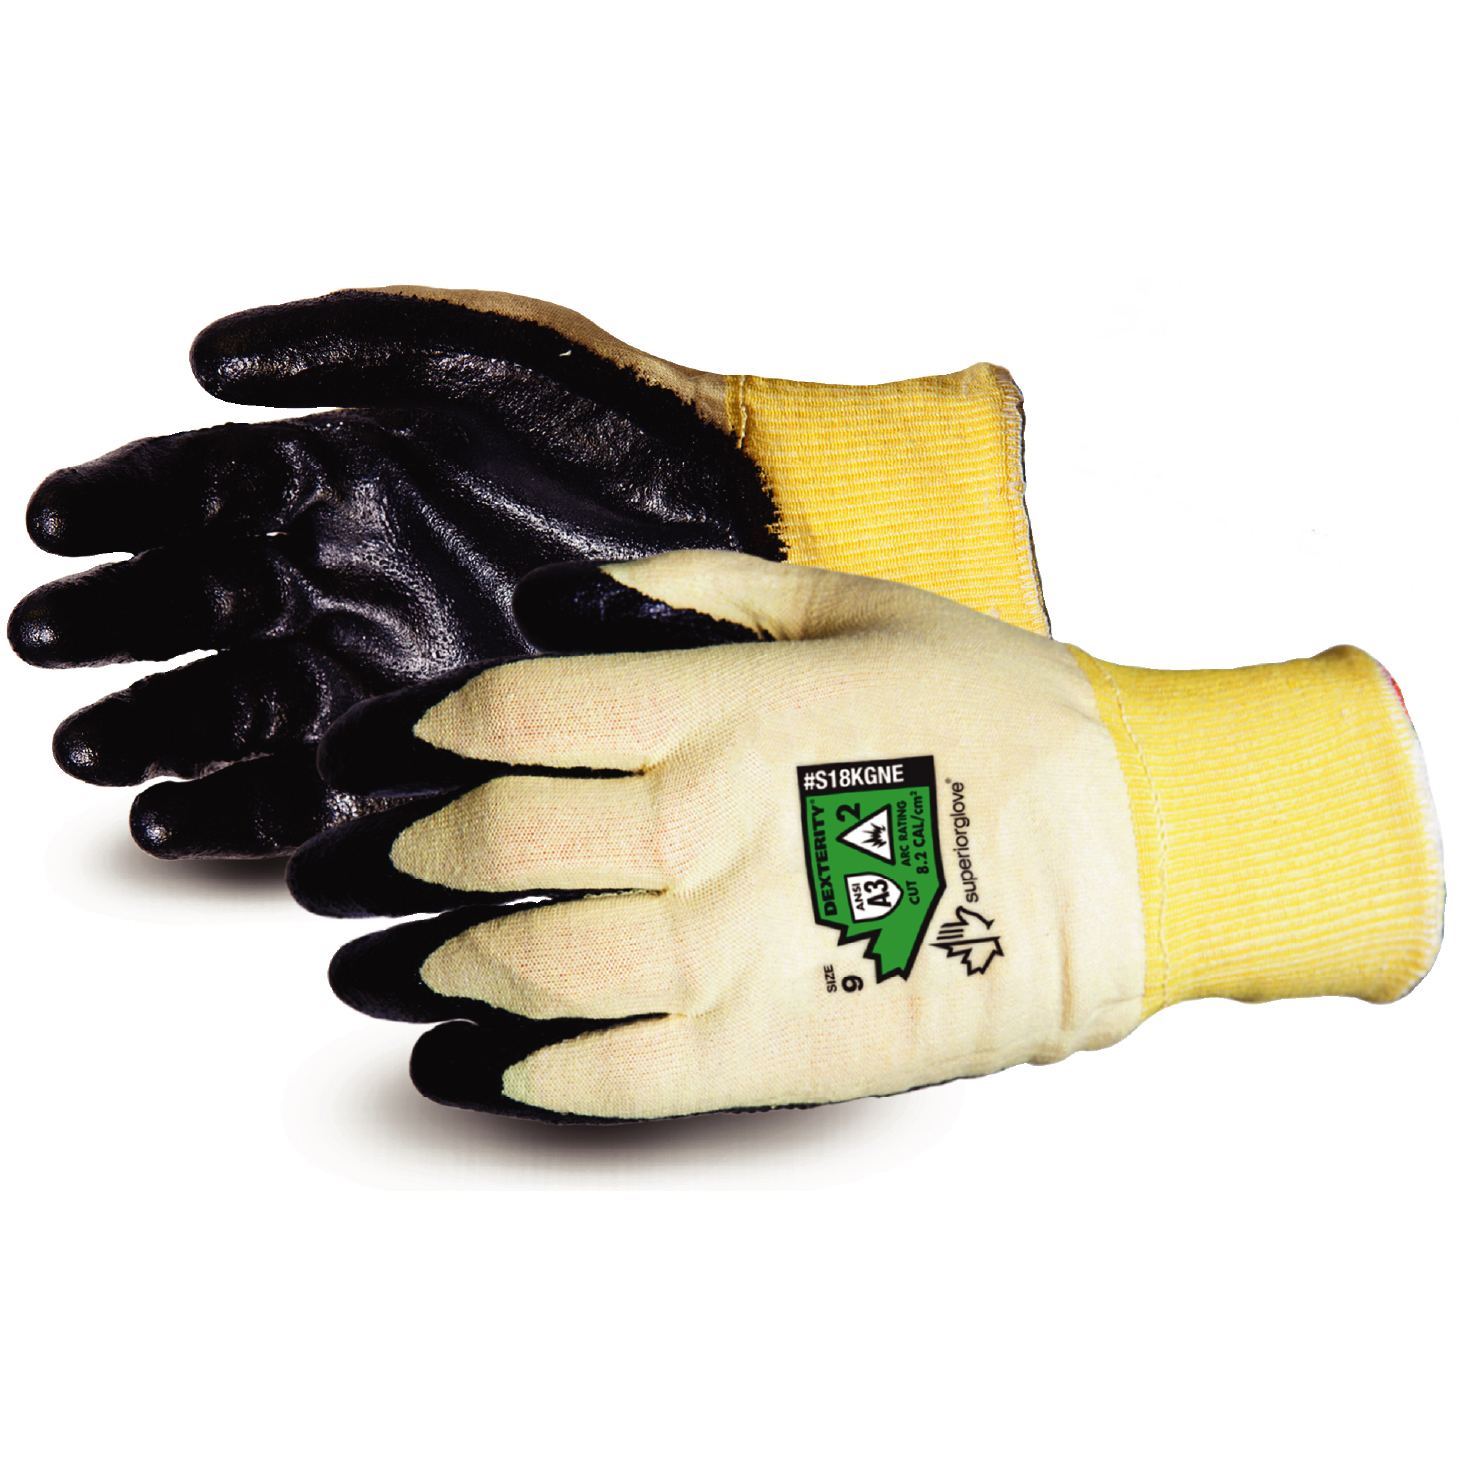 Superior Glove Dexterity 18-G Flame-Resist Arc Flash 5 Black Ref SUS18KGNE05 Up to 3 Day Leadtime